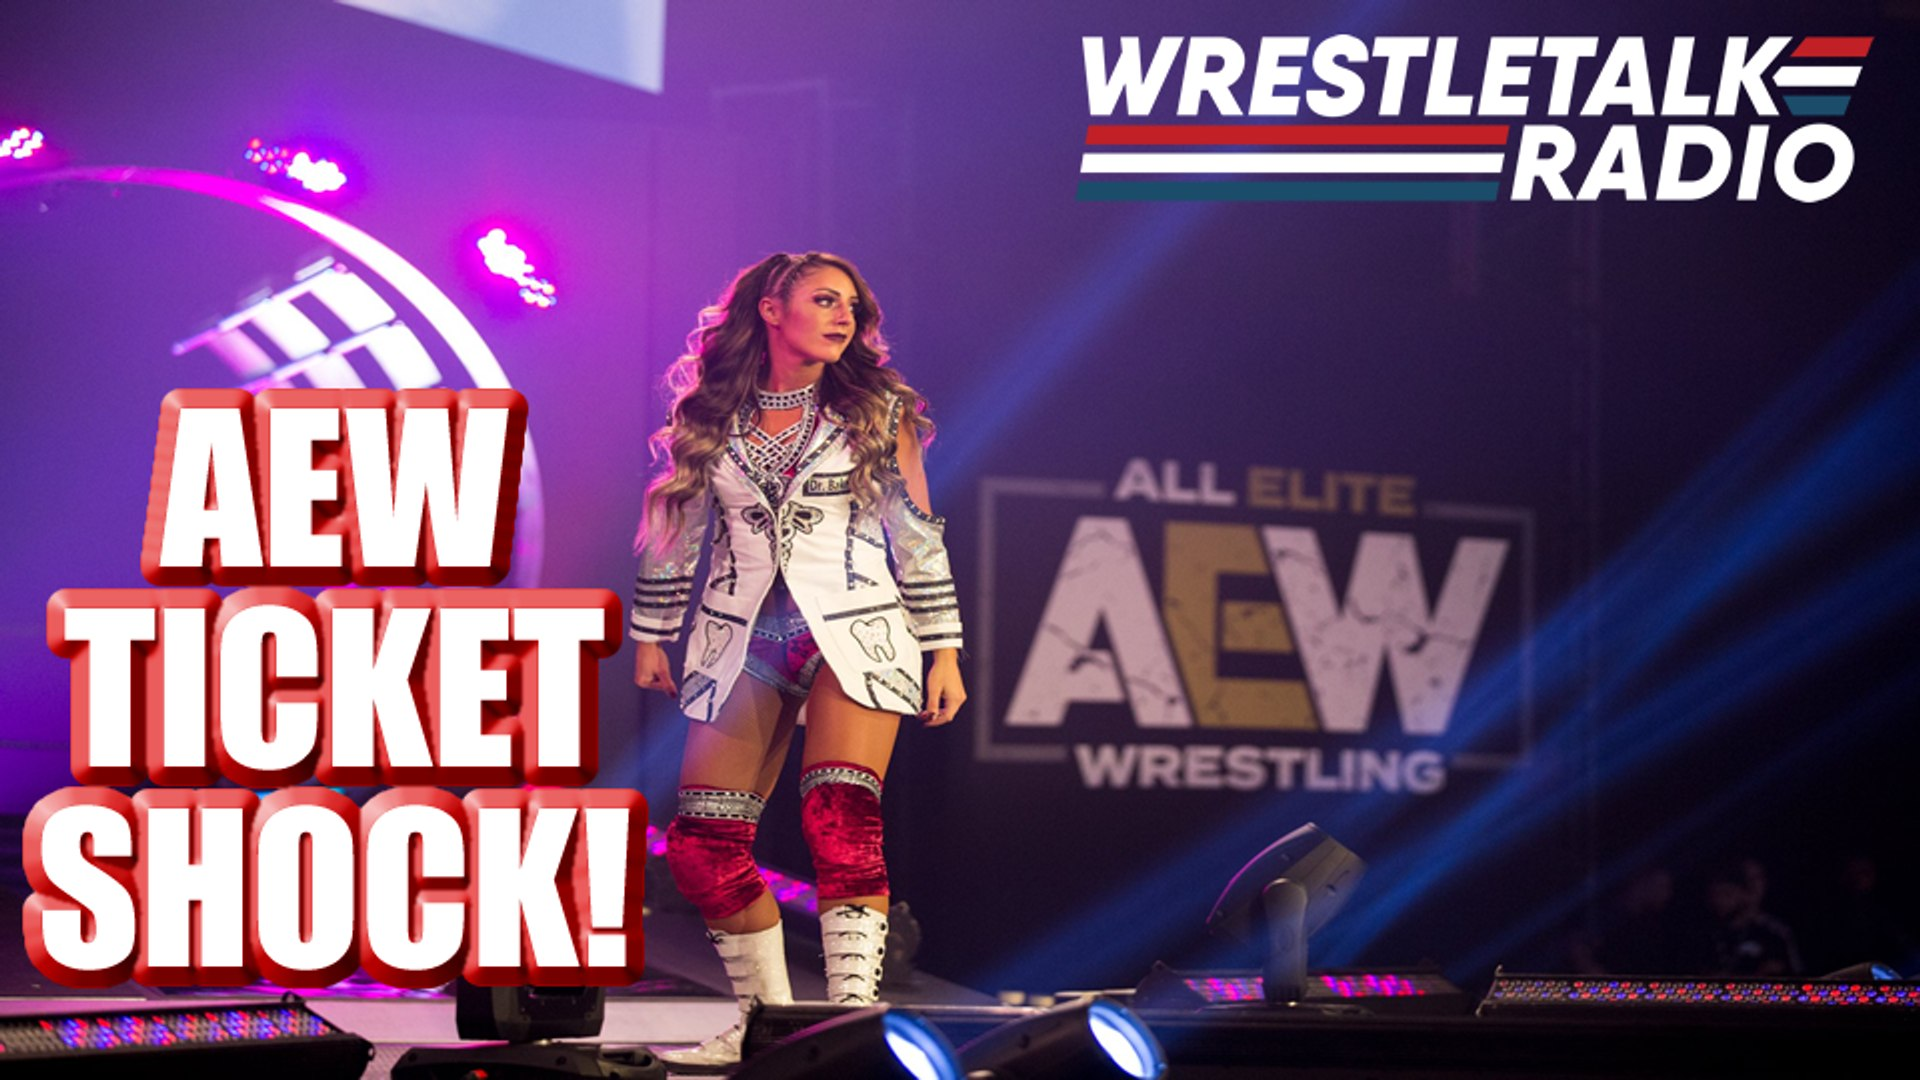 AEW Tickets SHOCK!! WWE 24/7 Title Wedding DRAMA?! WWE Hall of Famer gives Haircuts to HOMELESS!! -